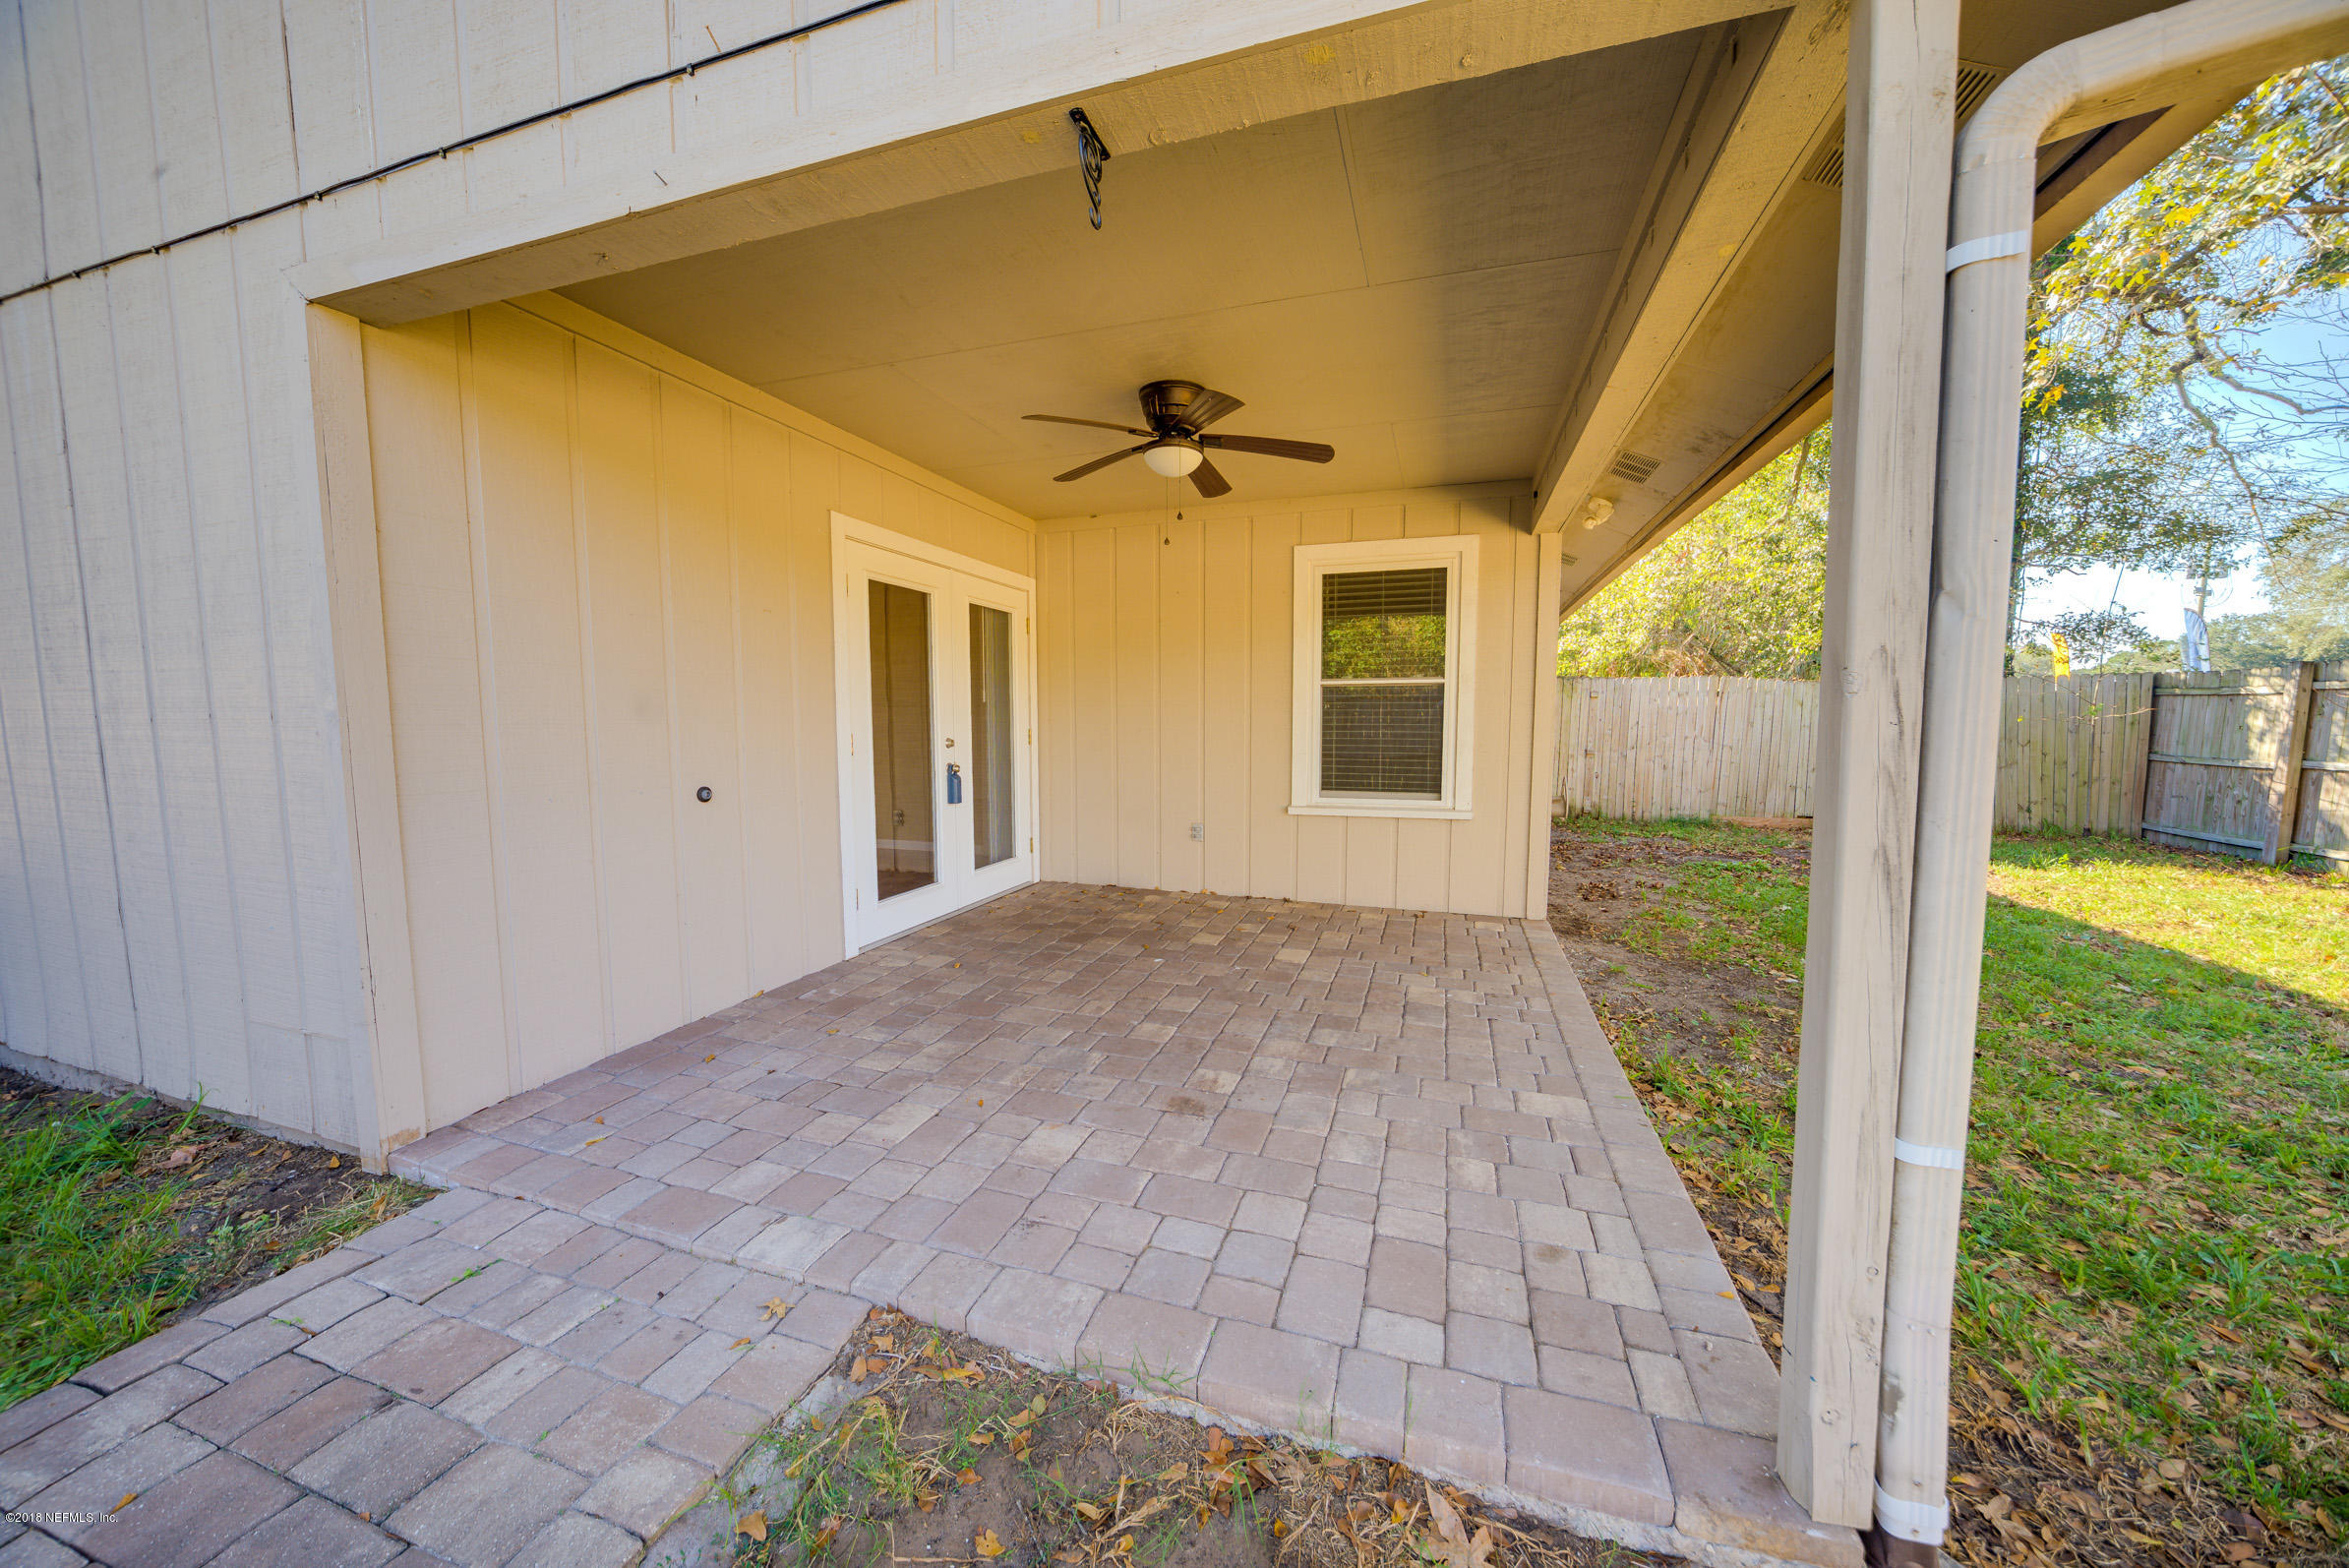 14361 COURTNEY WOODS, JACKSONVILLE, FLORIDA 32224, 2 Bedrooms Bedrooms, ,2 BathroomsBathrooms,Residential - townhome,For sale,COURTNEY WOODS,964808